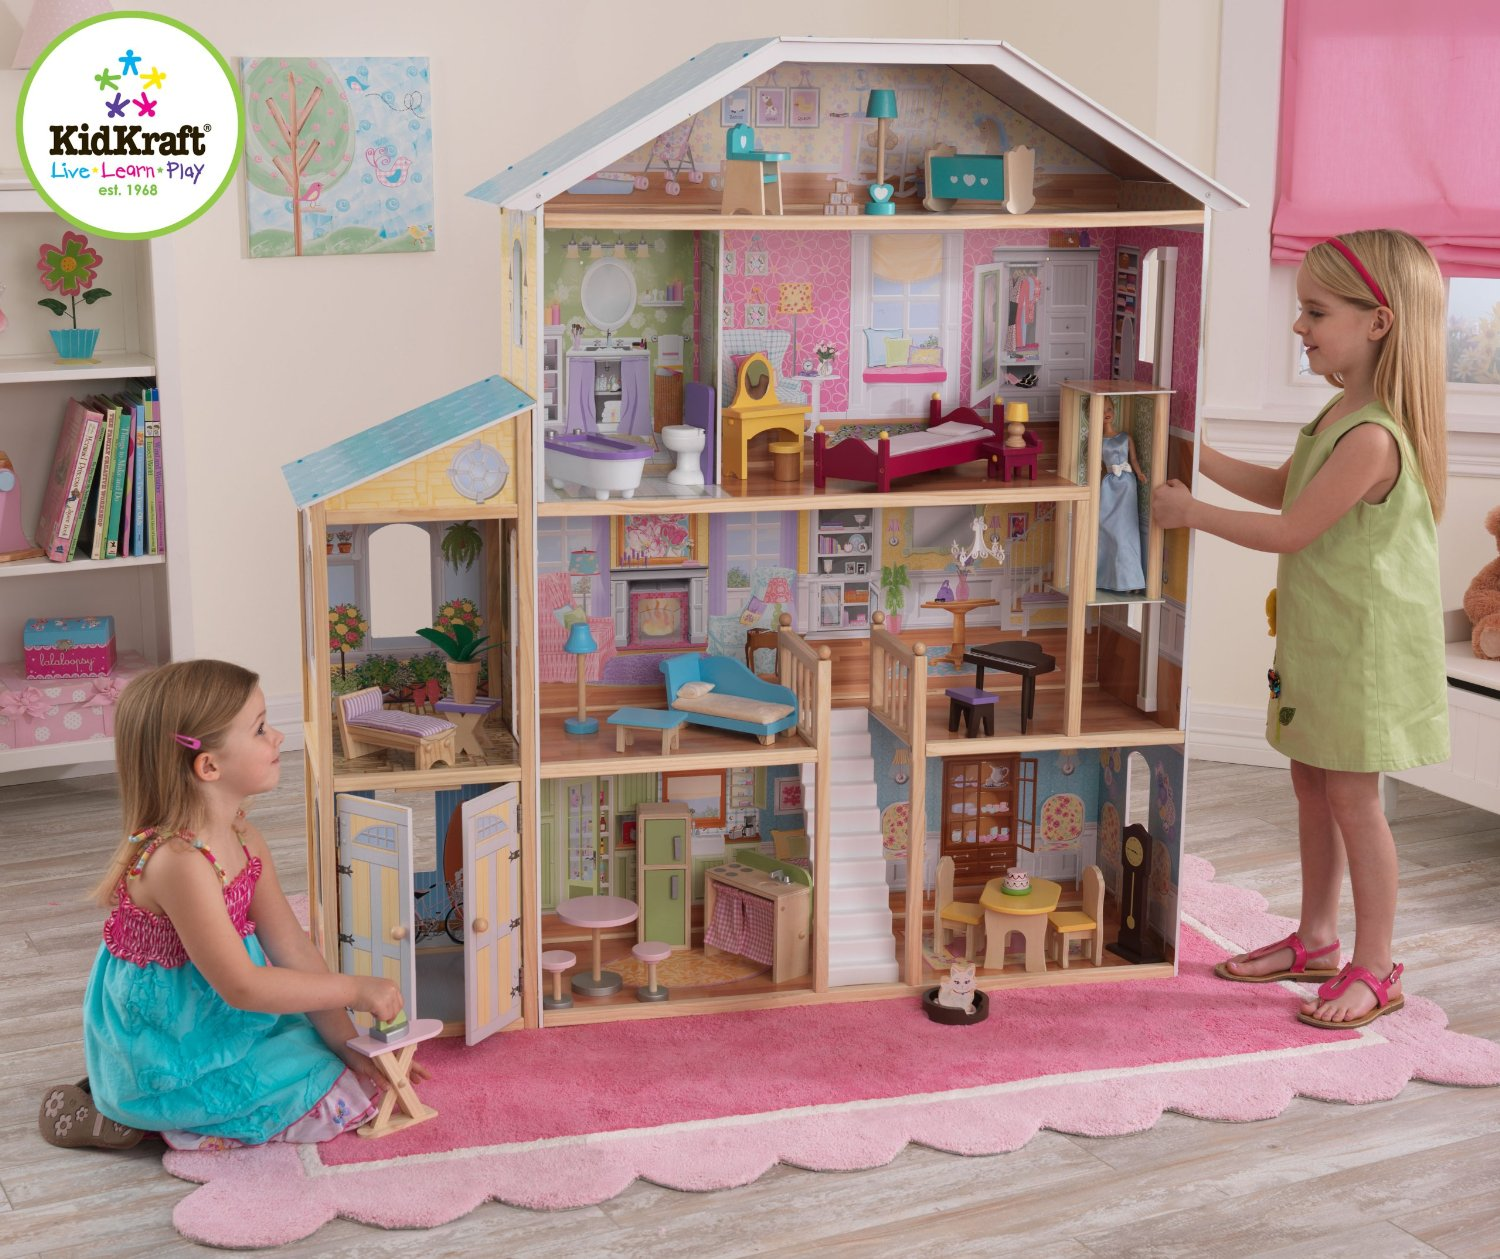 We love the majestic mansion dollhouse huge and super cute for Young house love dollhouse